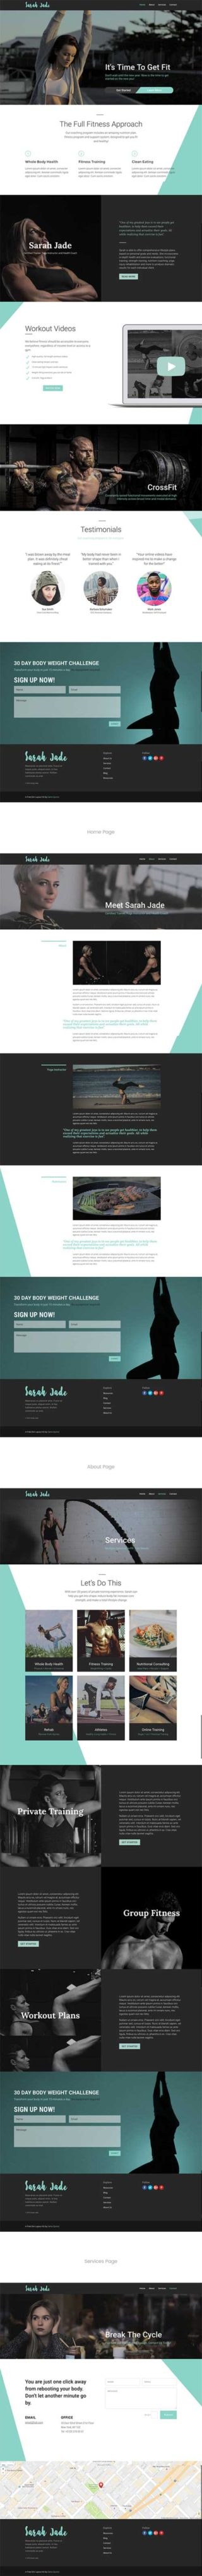 divi crossfit fitness layout pack